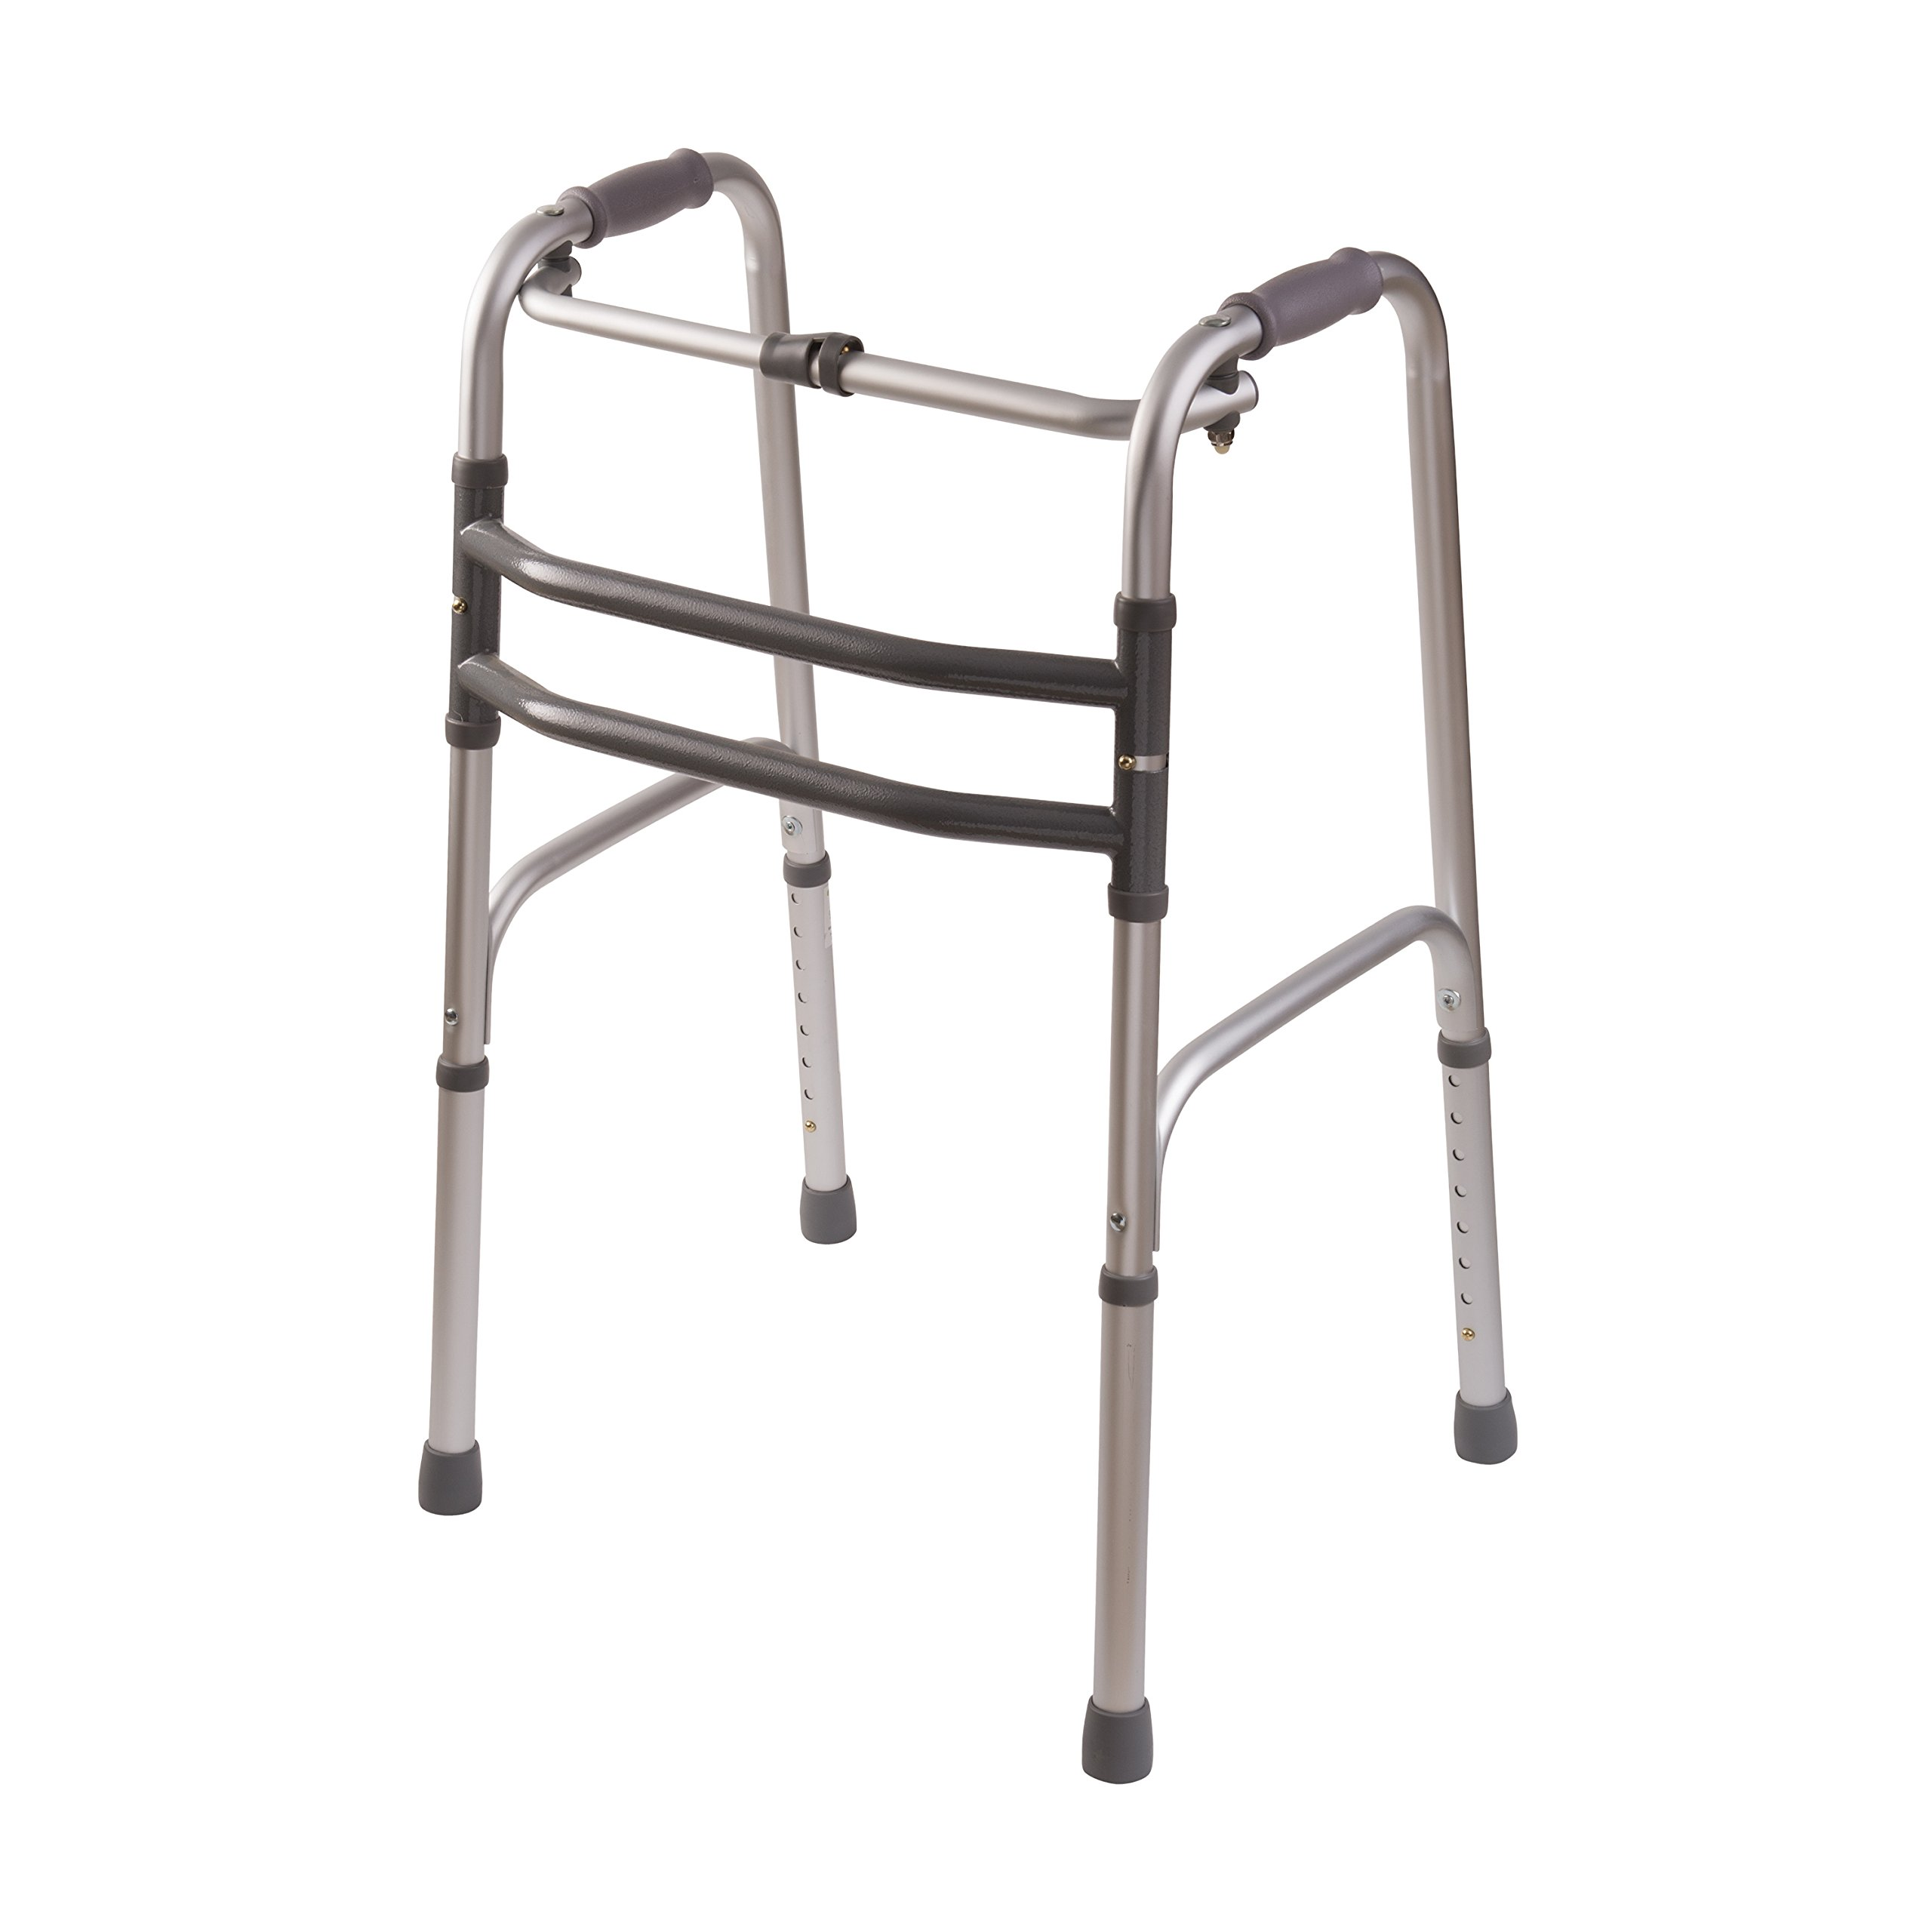 DMI Lightweight Aluminum Single Release Folding Walker with Soft Foam Handgrips, Adjustable Height, Silver, 250 lbs